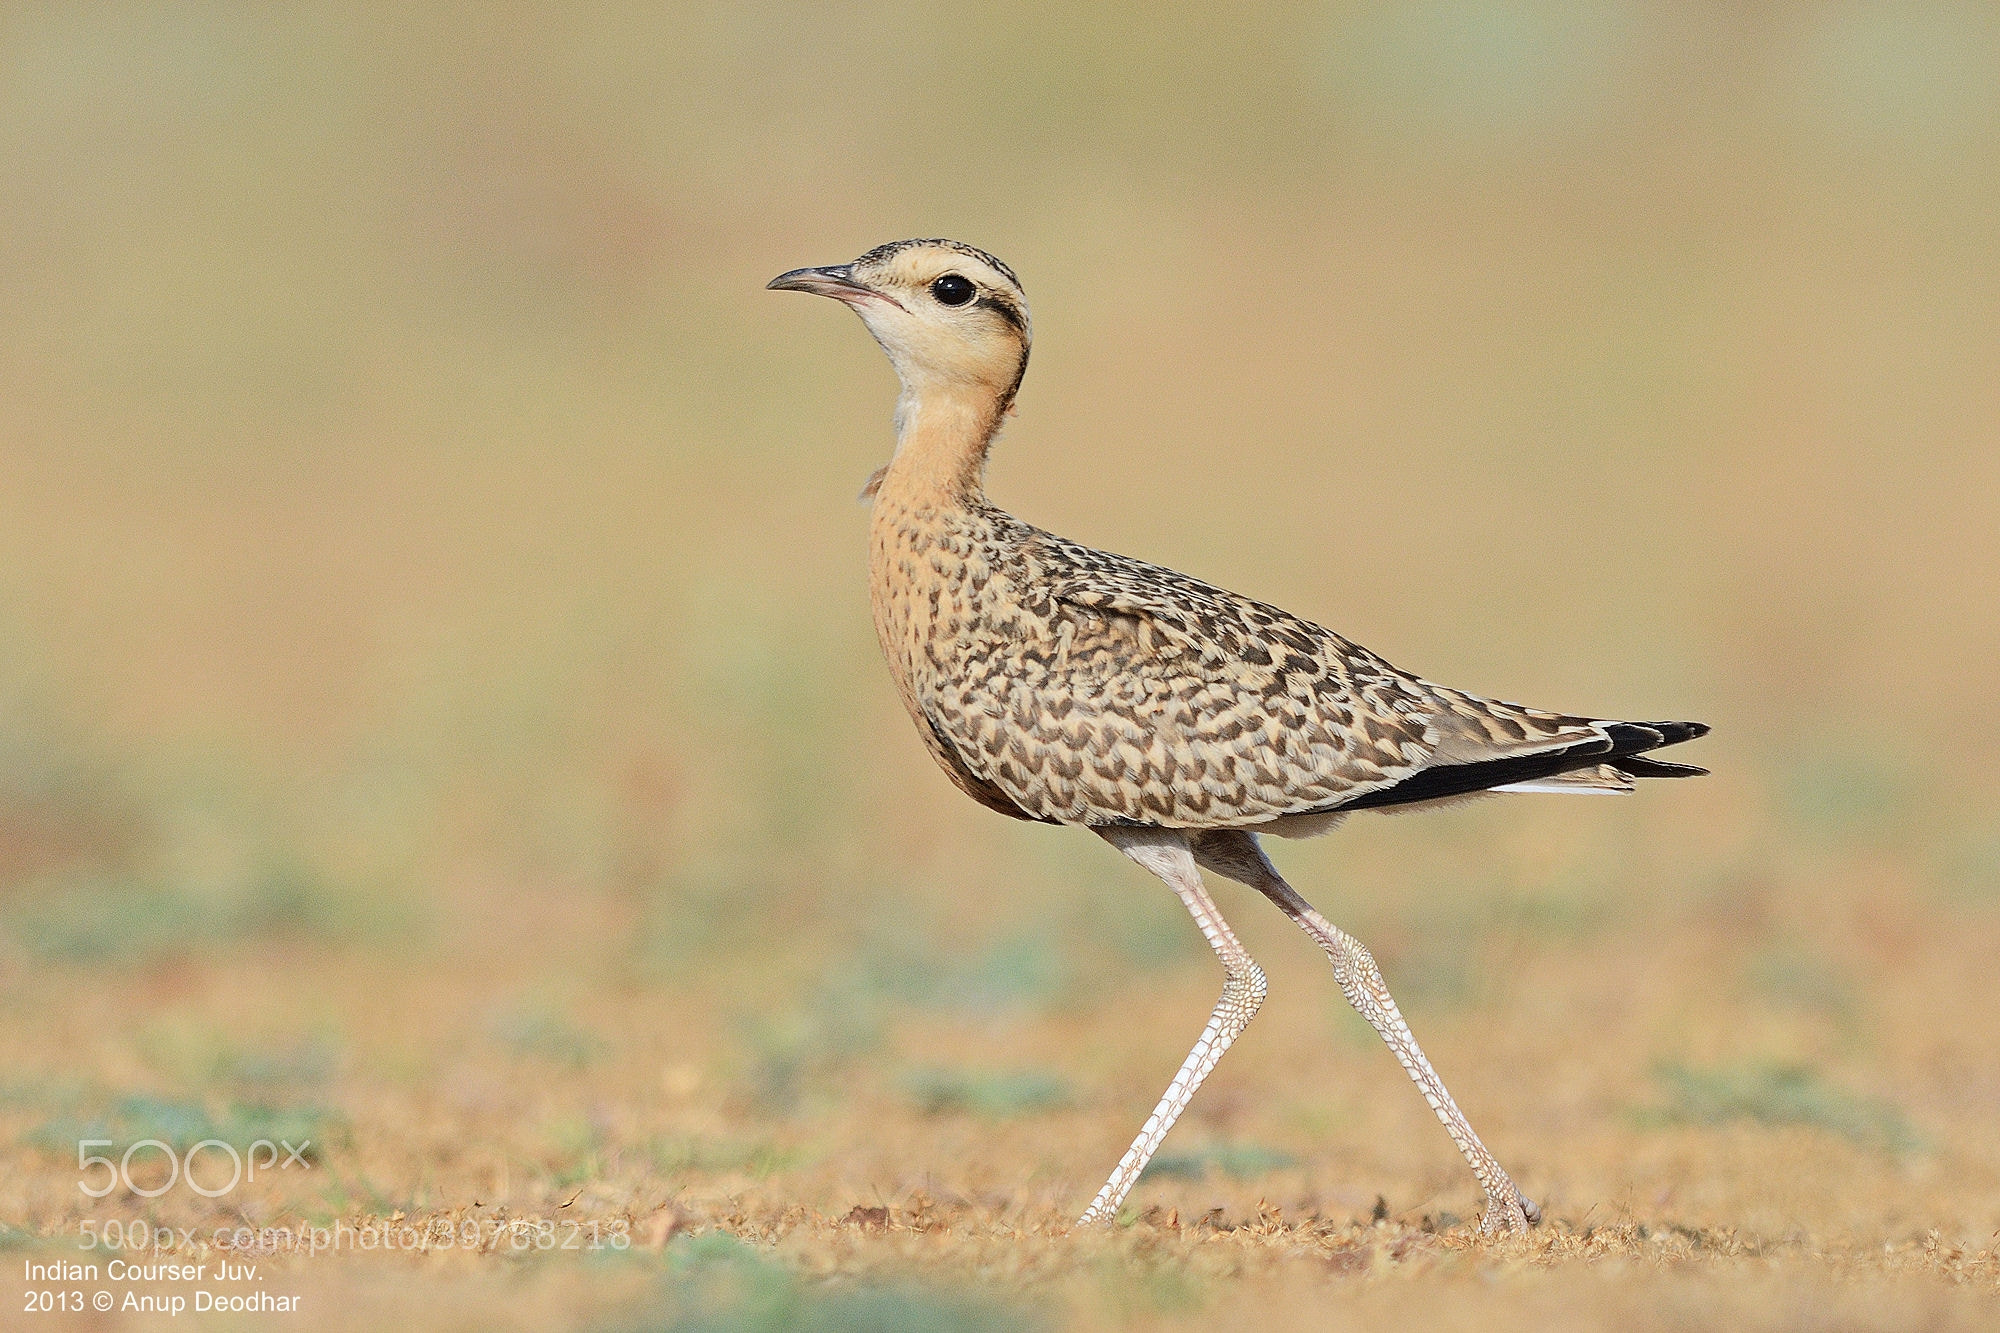 Photograph Indian Courser Juvenile by Anup Deodhar on 500px